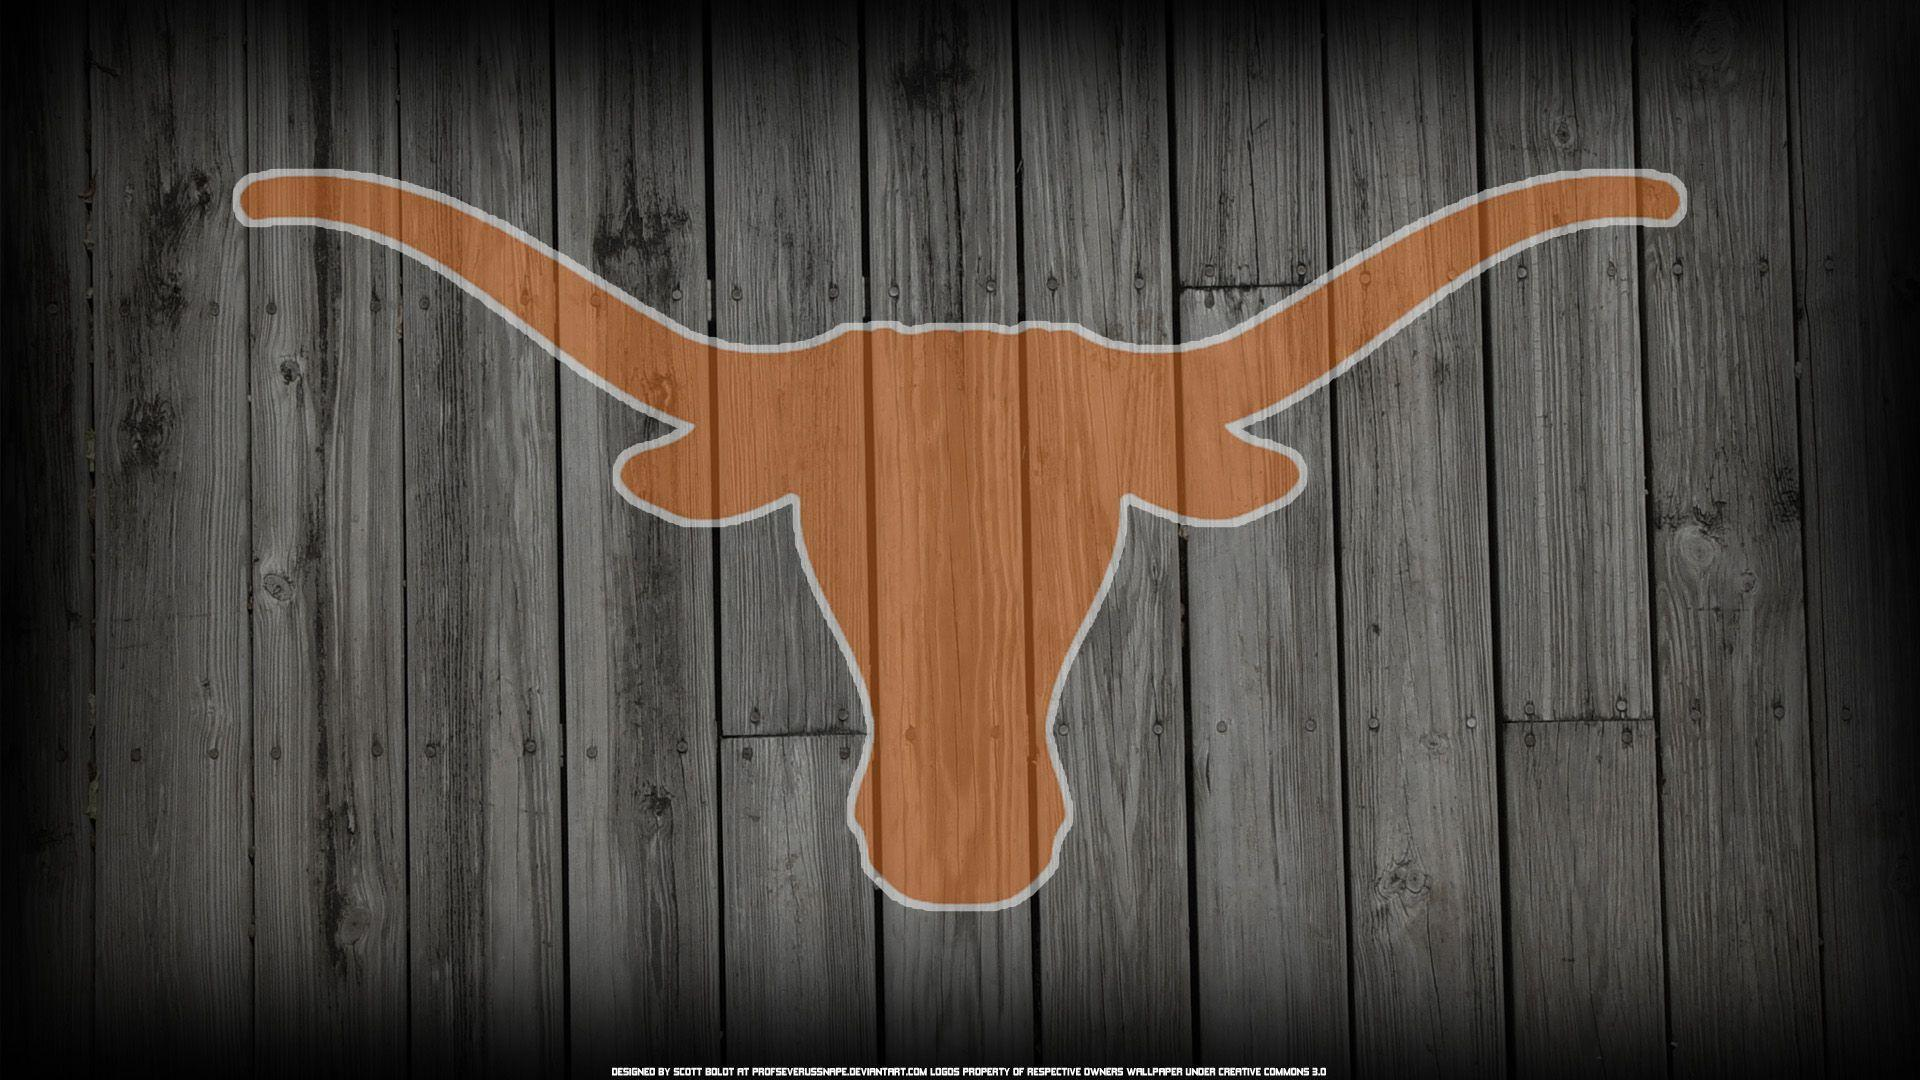 university of texas phone wallpaper - photo #28